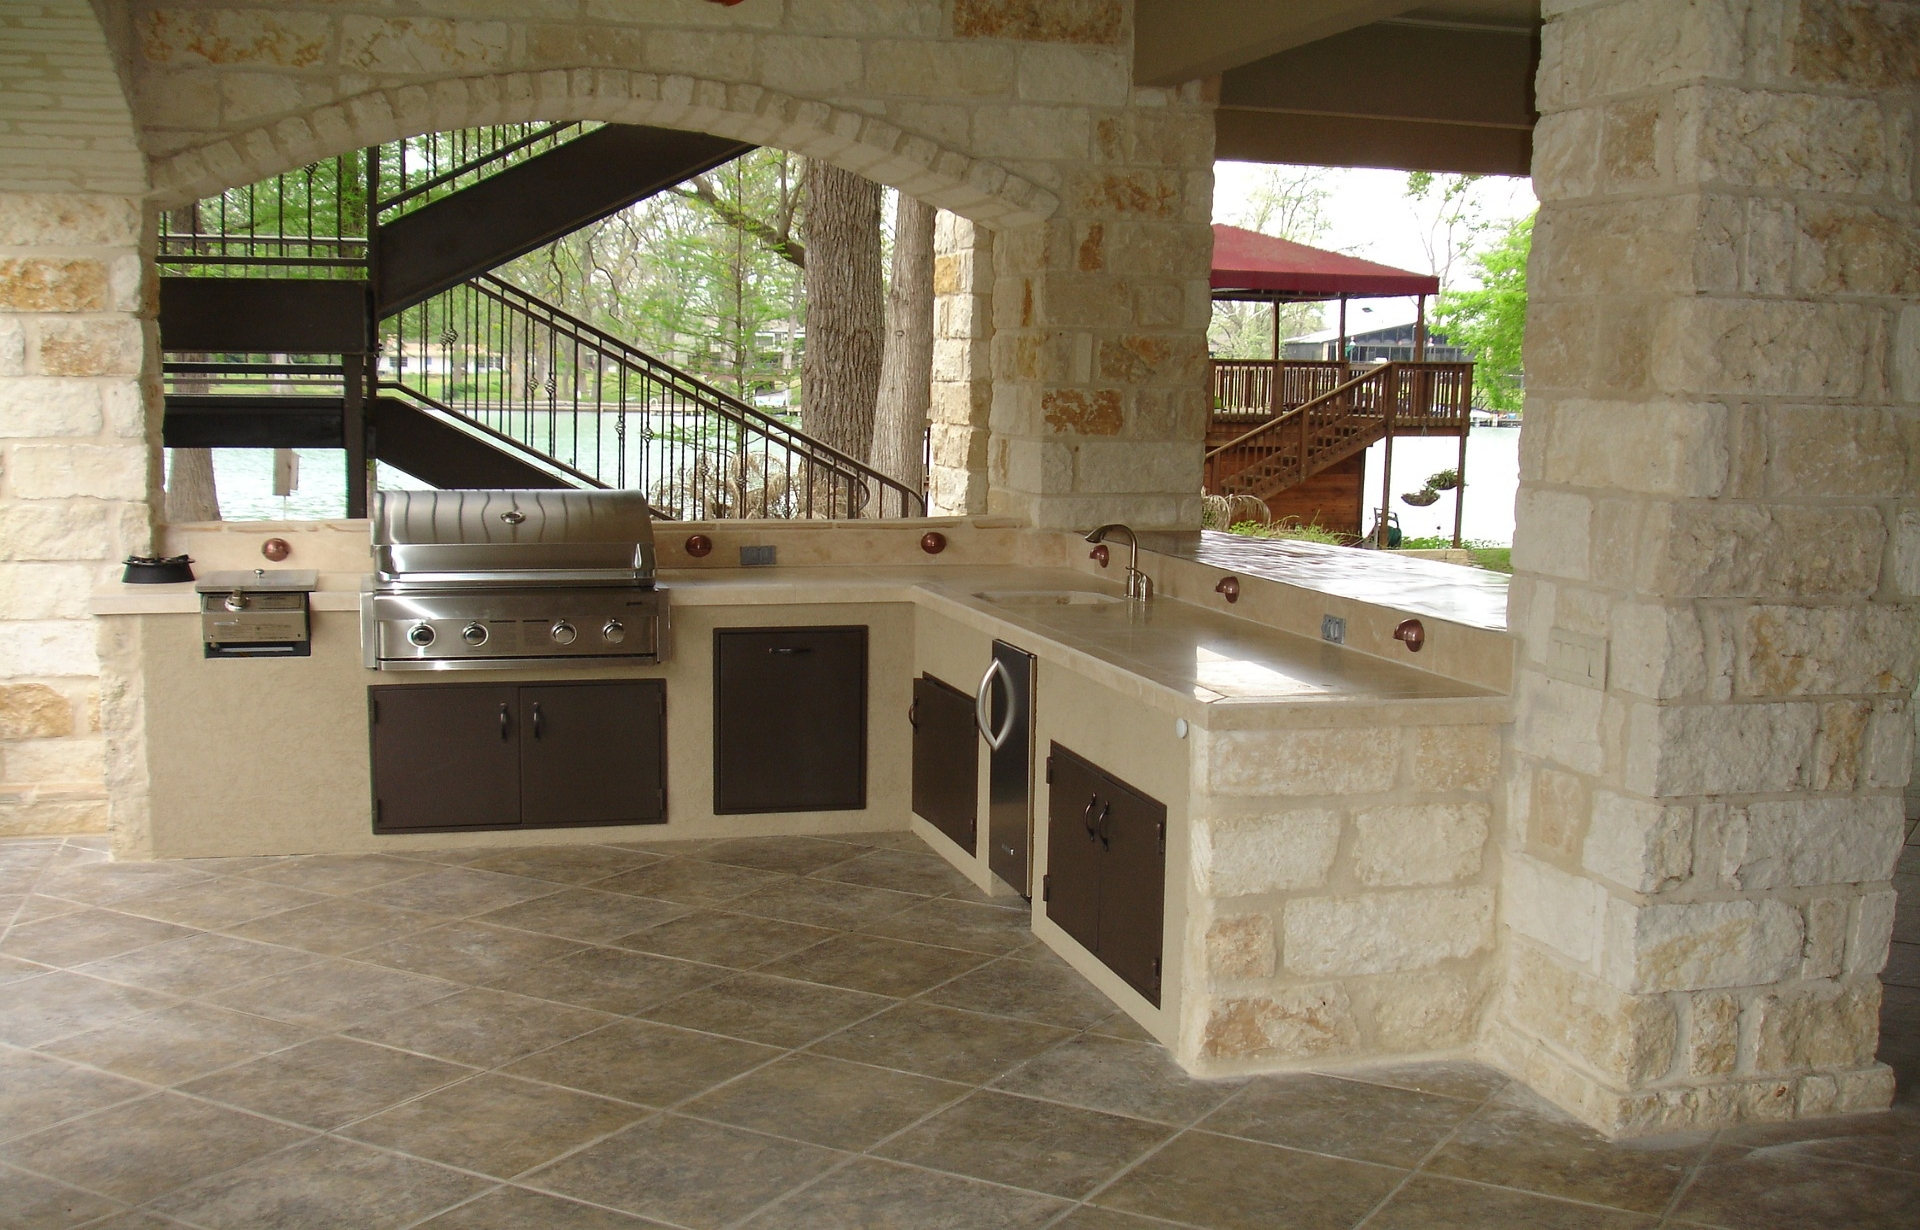 outdoor-kitchen-1537768_1920.jpg